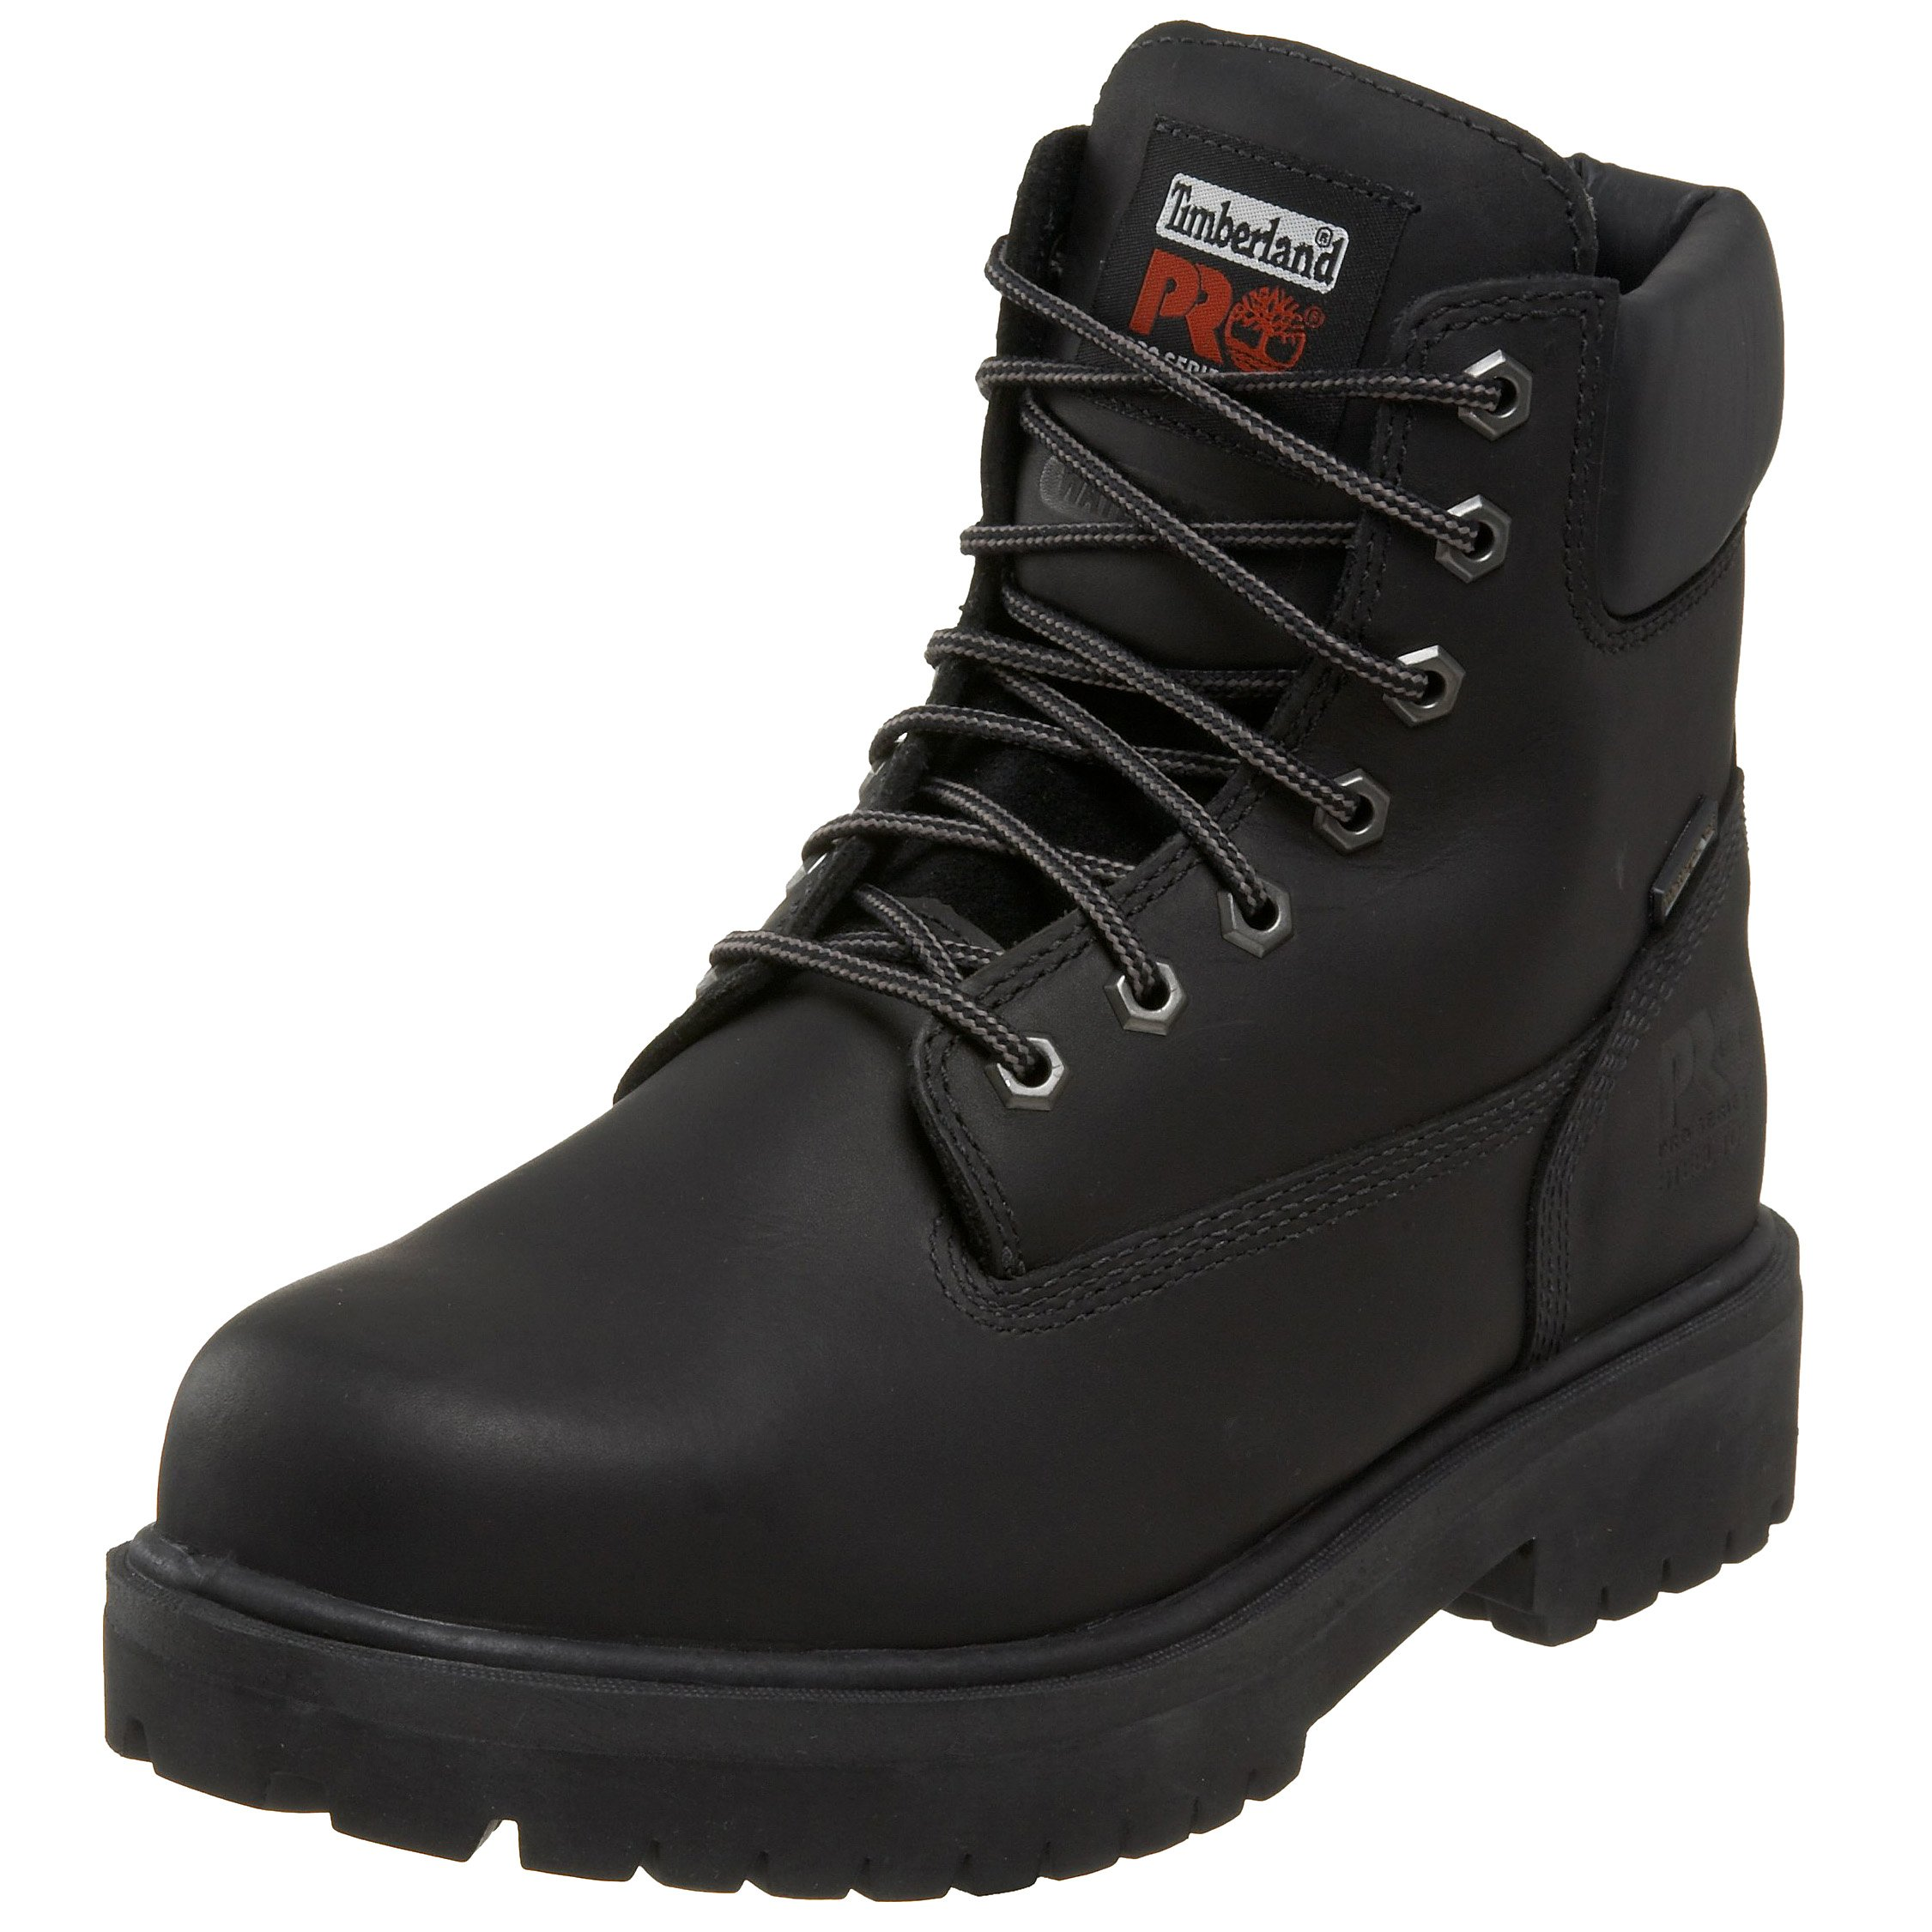 Timberland PRO Men's 26038 Direct Attach 6'' Steel Toe Boot,Black,7.5 M